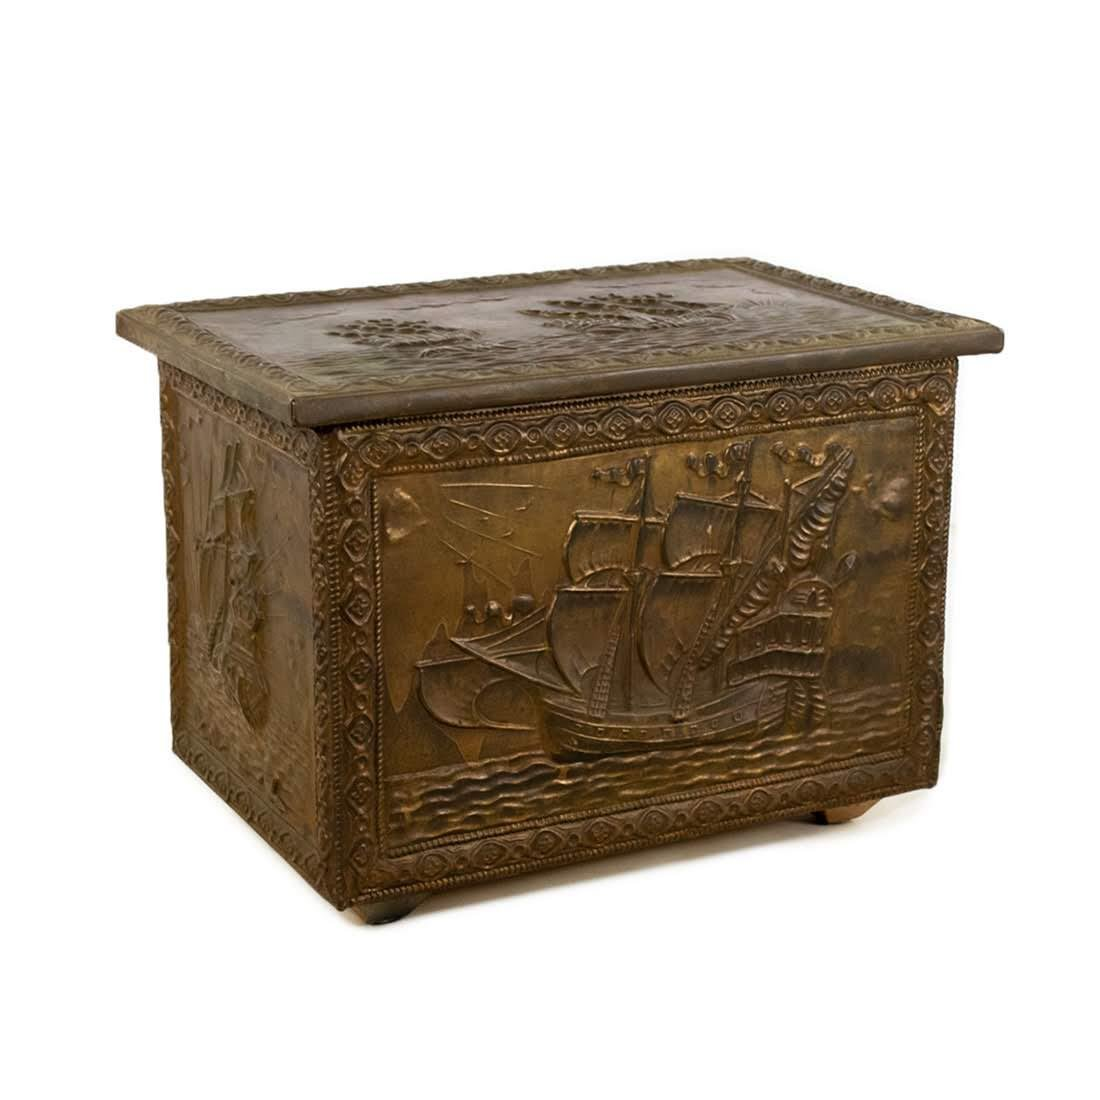 Embossed Brass on Wood Galleon Ship Chest